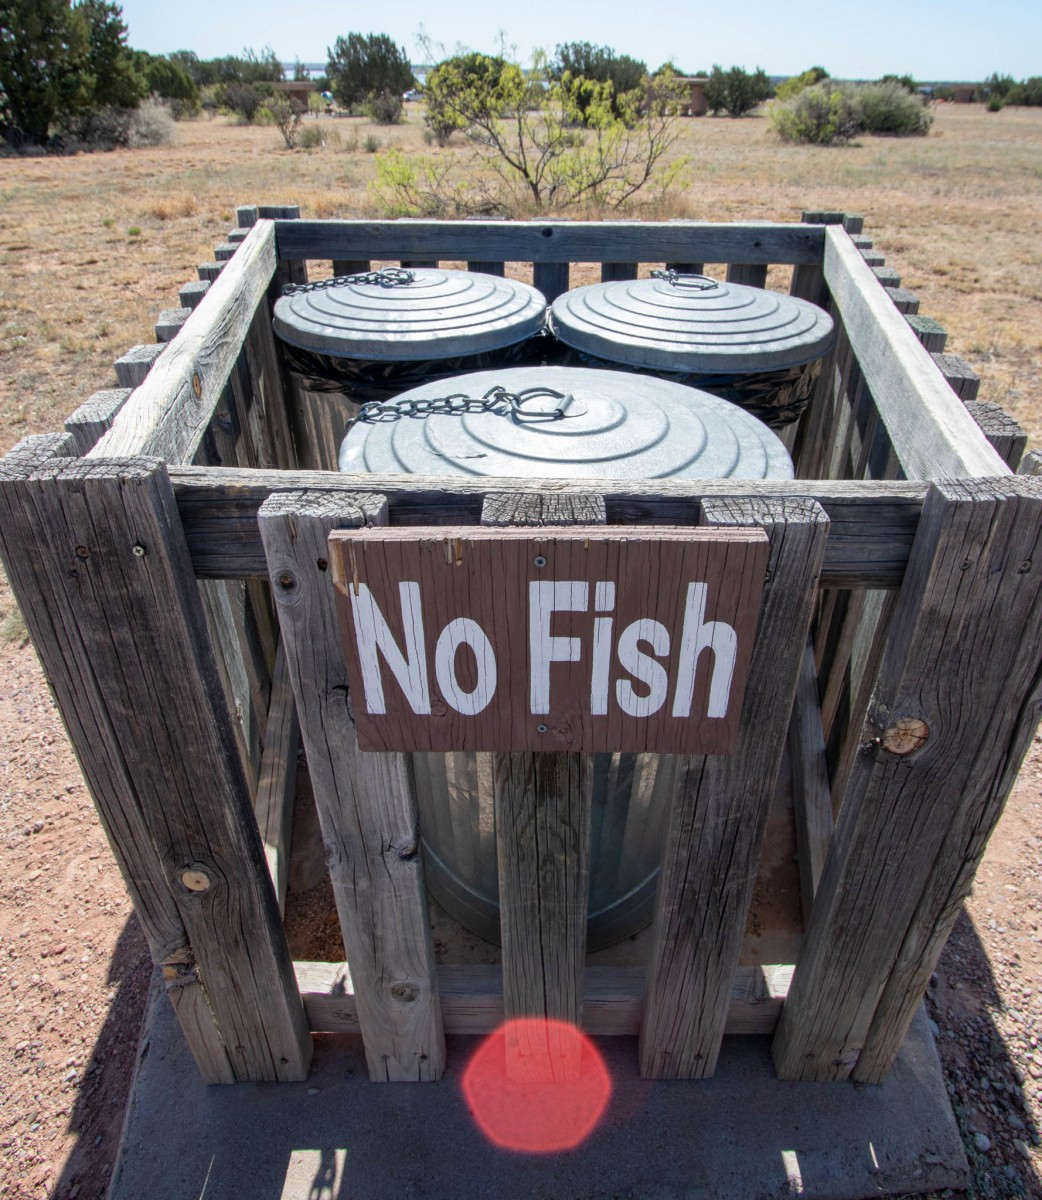 No Fish In Trash Cans